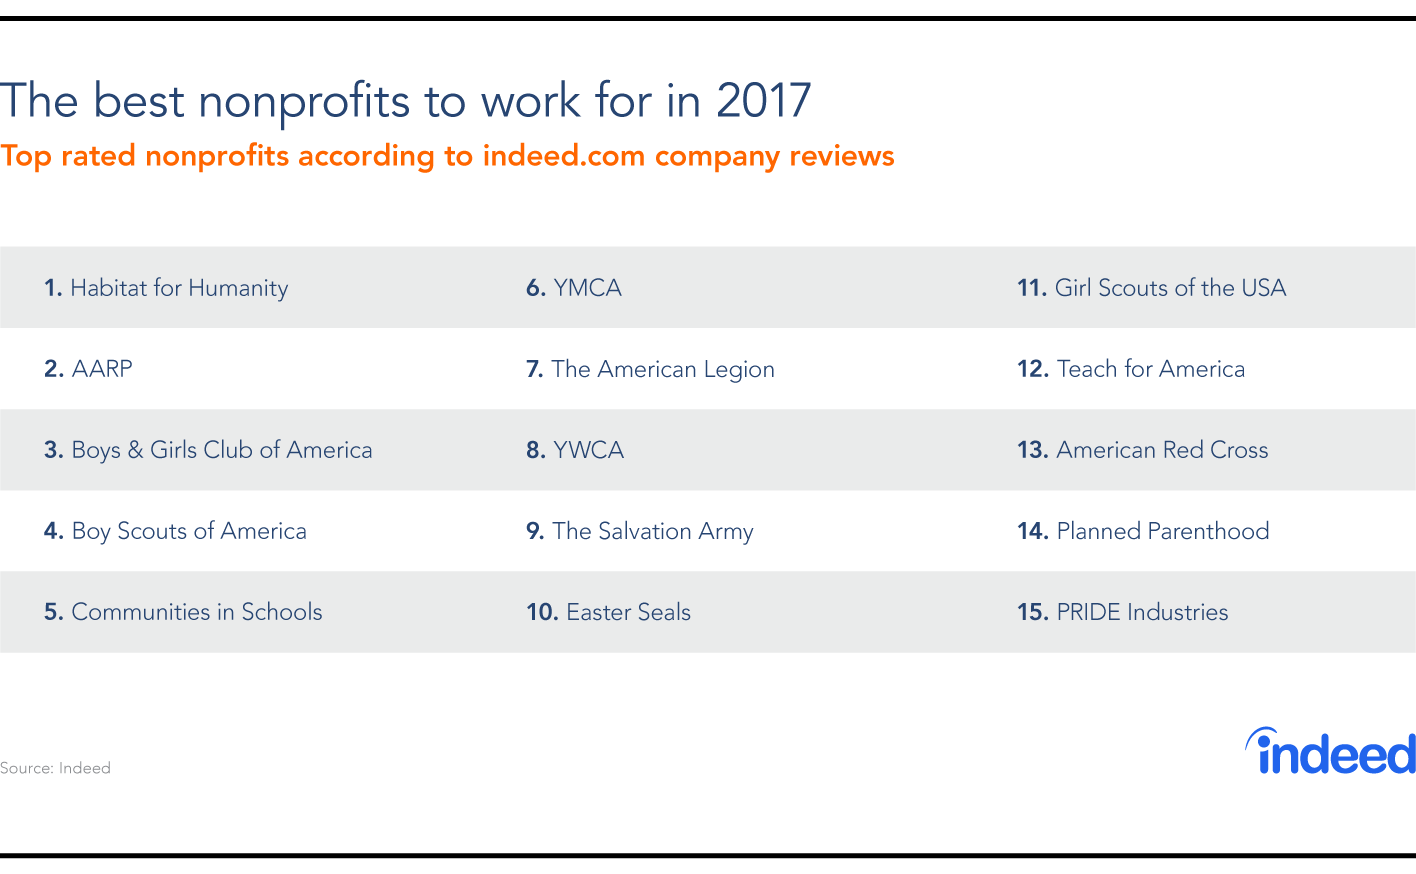 The Power Of Purpose: The Best Nonprofits To Work For In 2017